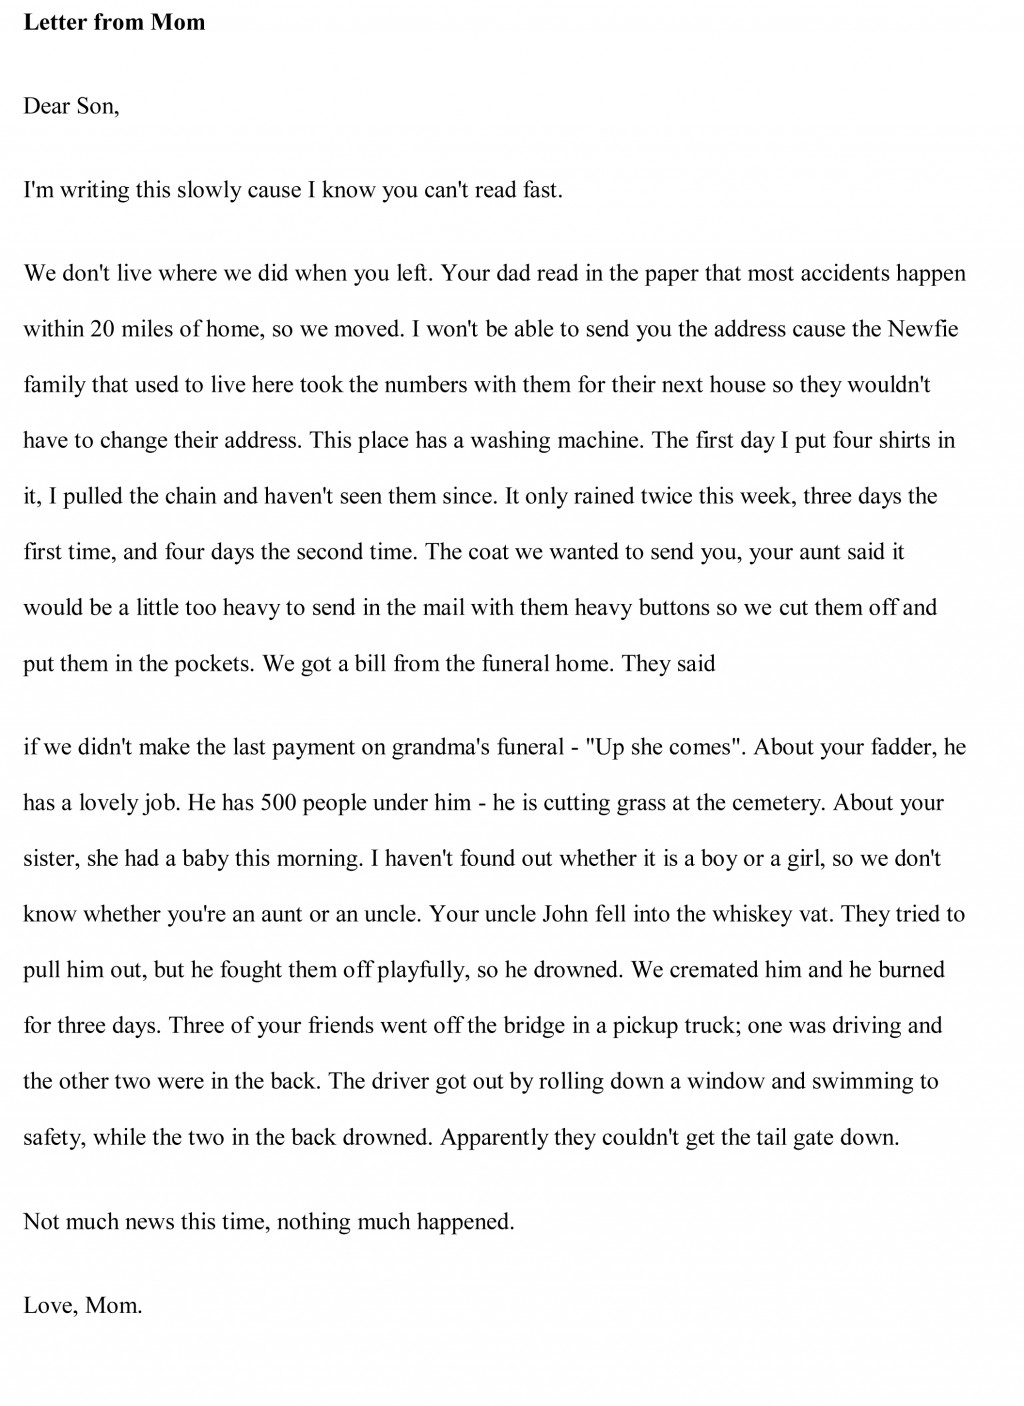 001 Humorous Essays Funny Essay Free Sample Outstanding In English For High School On Marriage Large